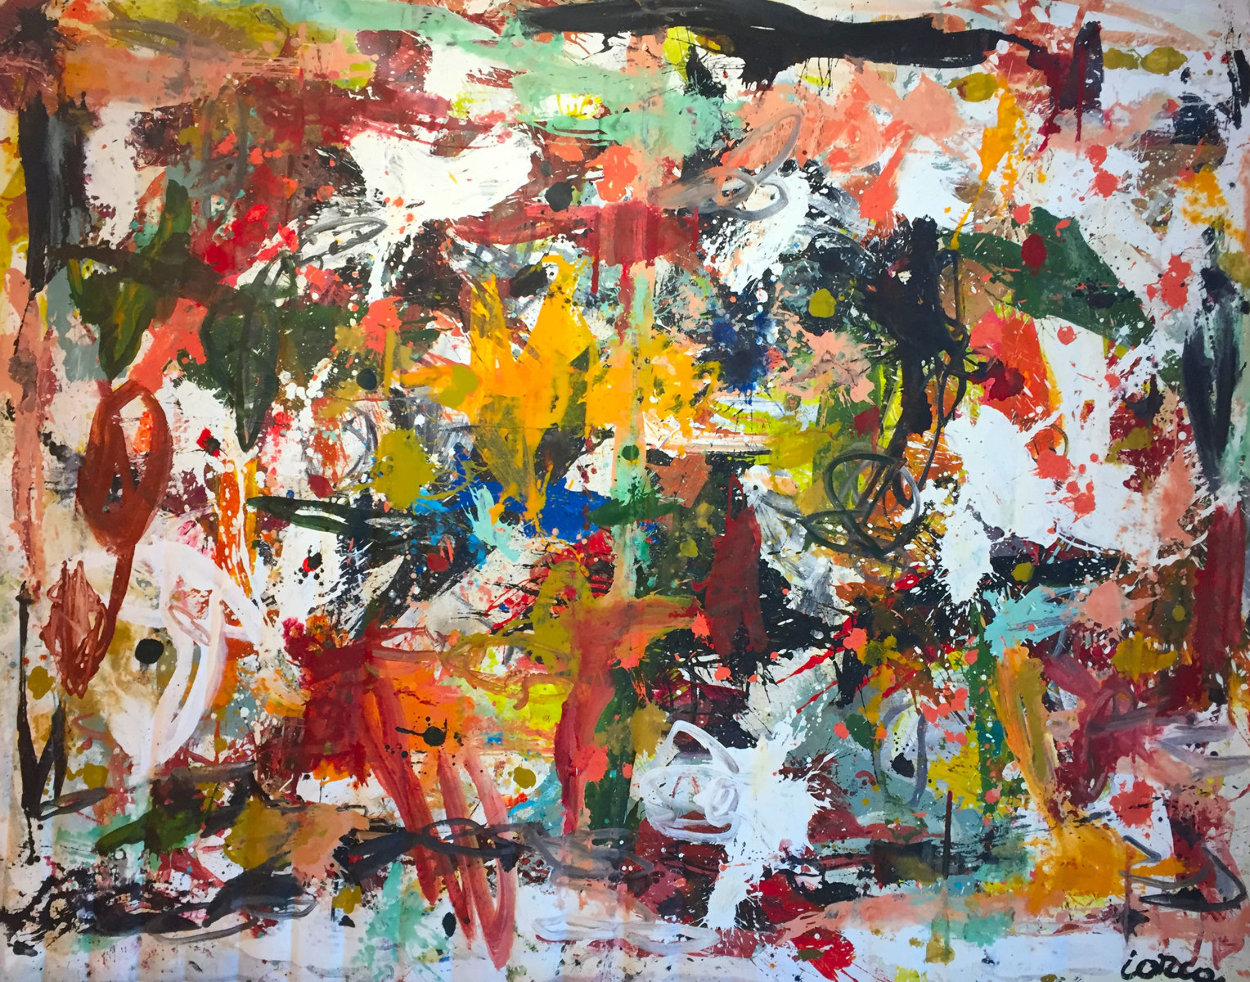 Fall in Universe 2017 106x126 Mural Super Huge Original Painting by Costel Iarca